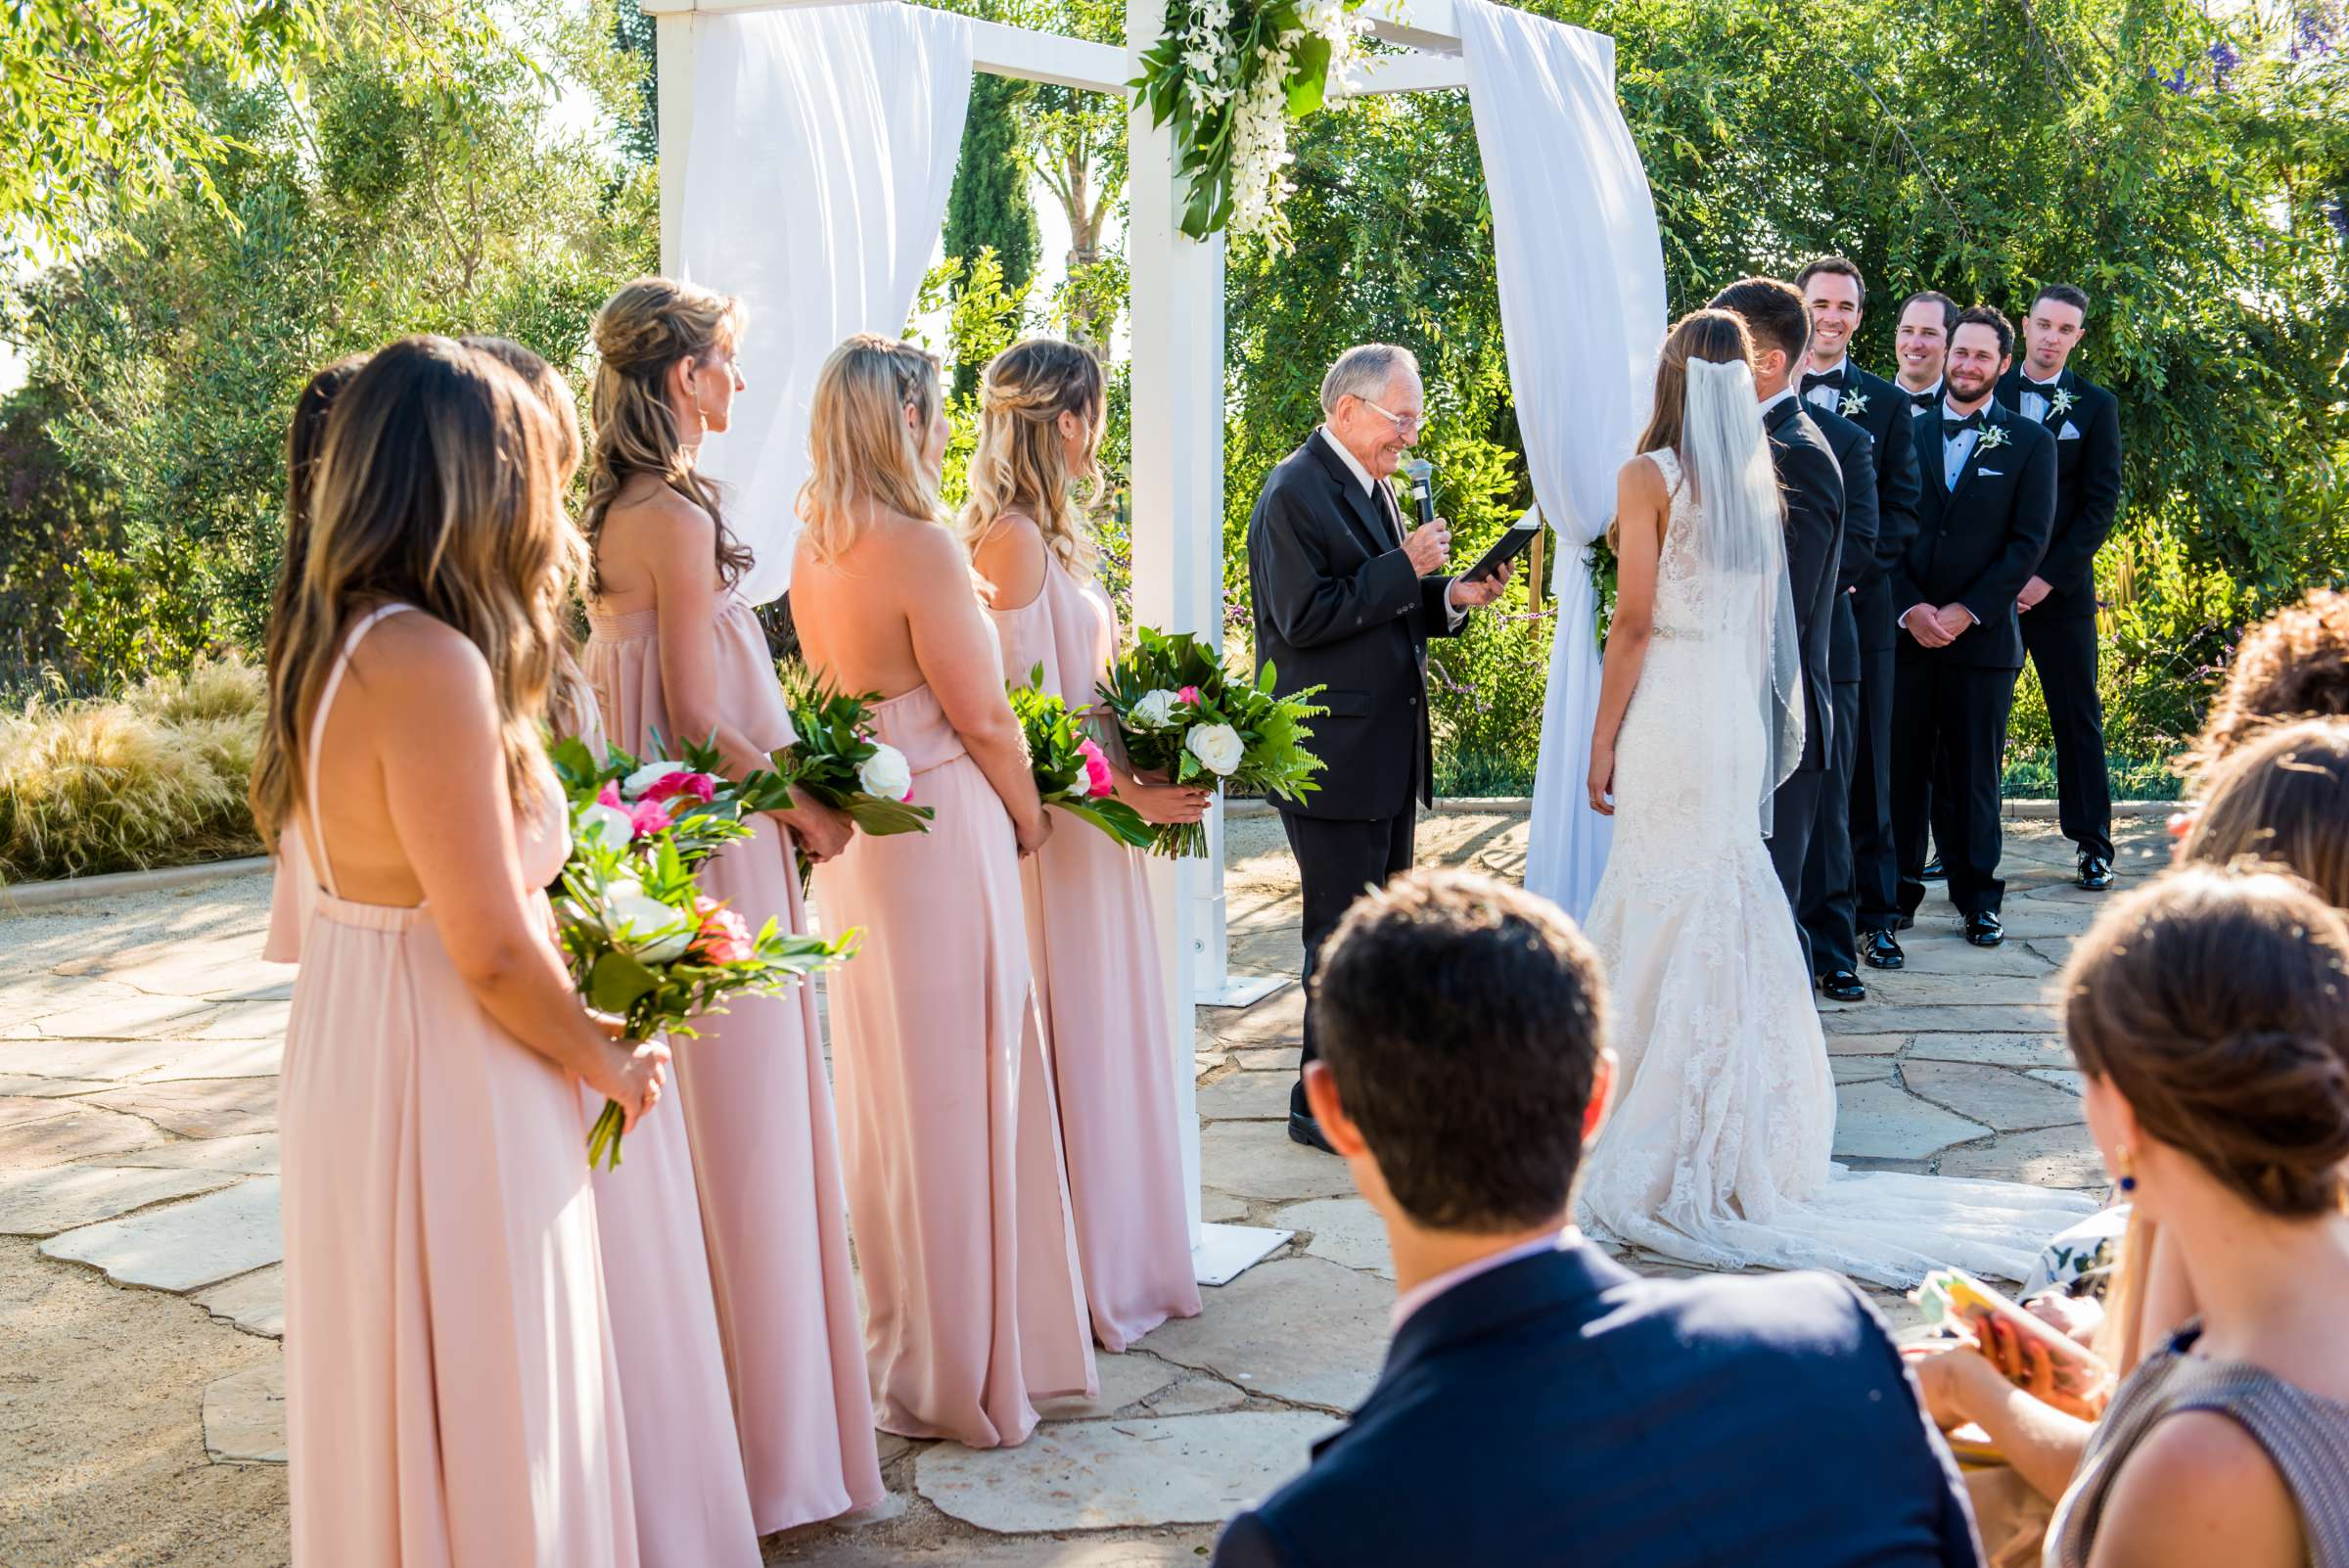 Sheraton Carlsbad Resort and Spa Wedding coordinated by Sweet Blossom Weddings, Tayla and Andrew Wedding Photo #479851 by True Photography